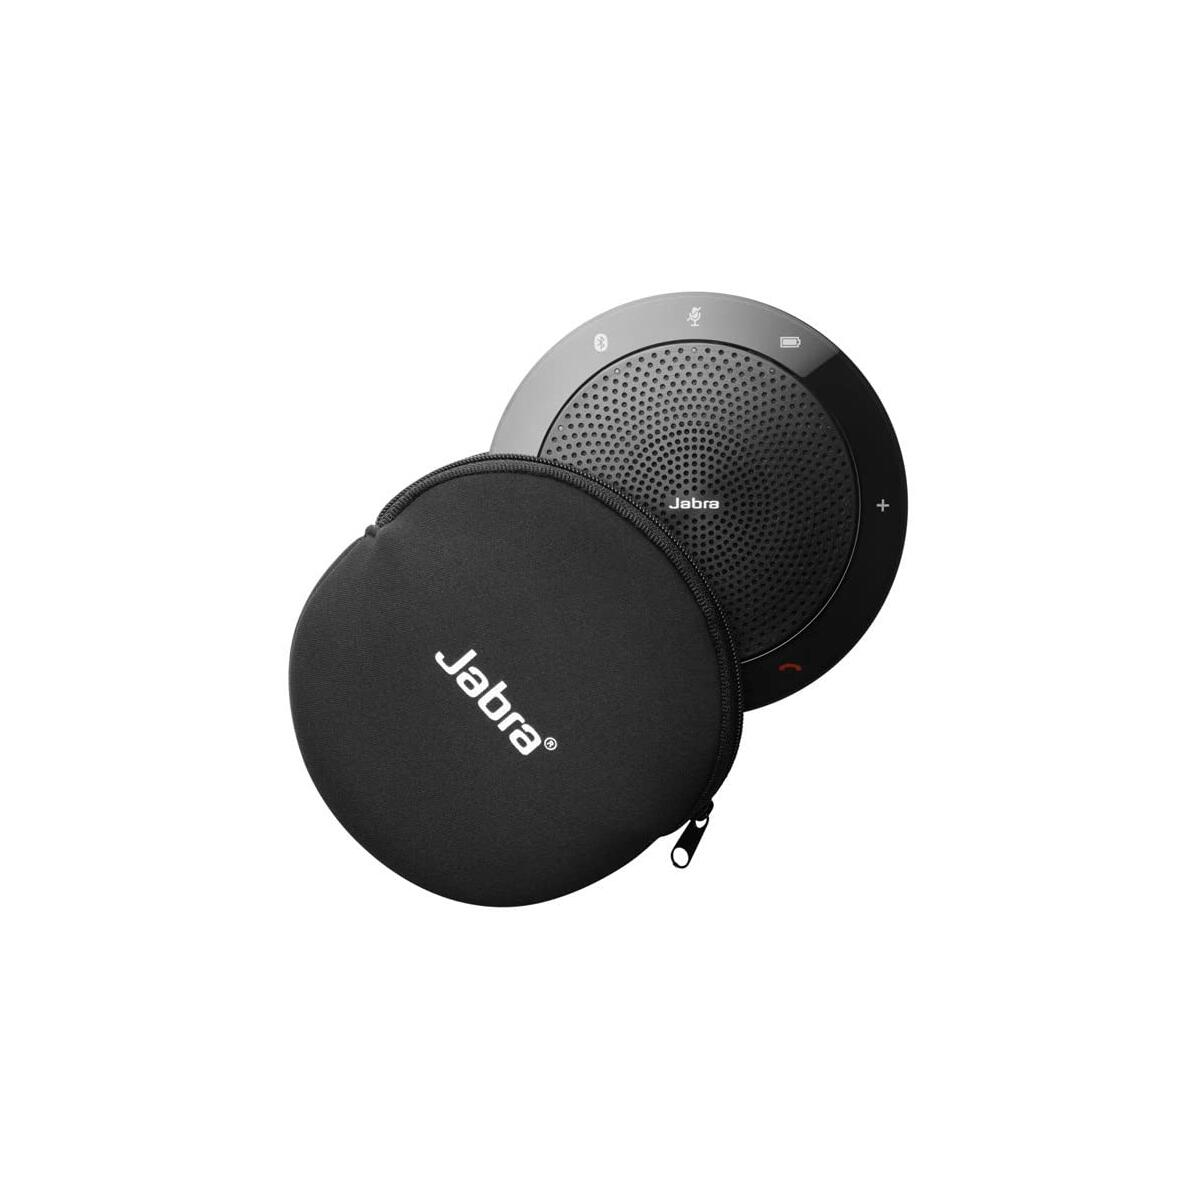 Jabra Speak 510 MS Wireless Bluetooth Speaker for Softphone and Mobile Phone – Easy Setup, Portable Speaker for Holding Meetings Anywhere with Outstanding Sound Quality